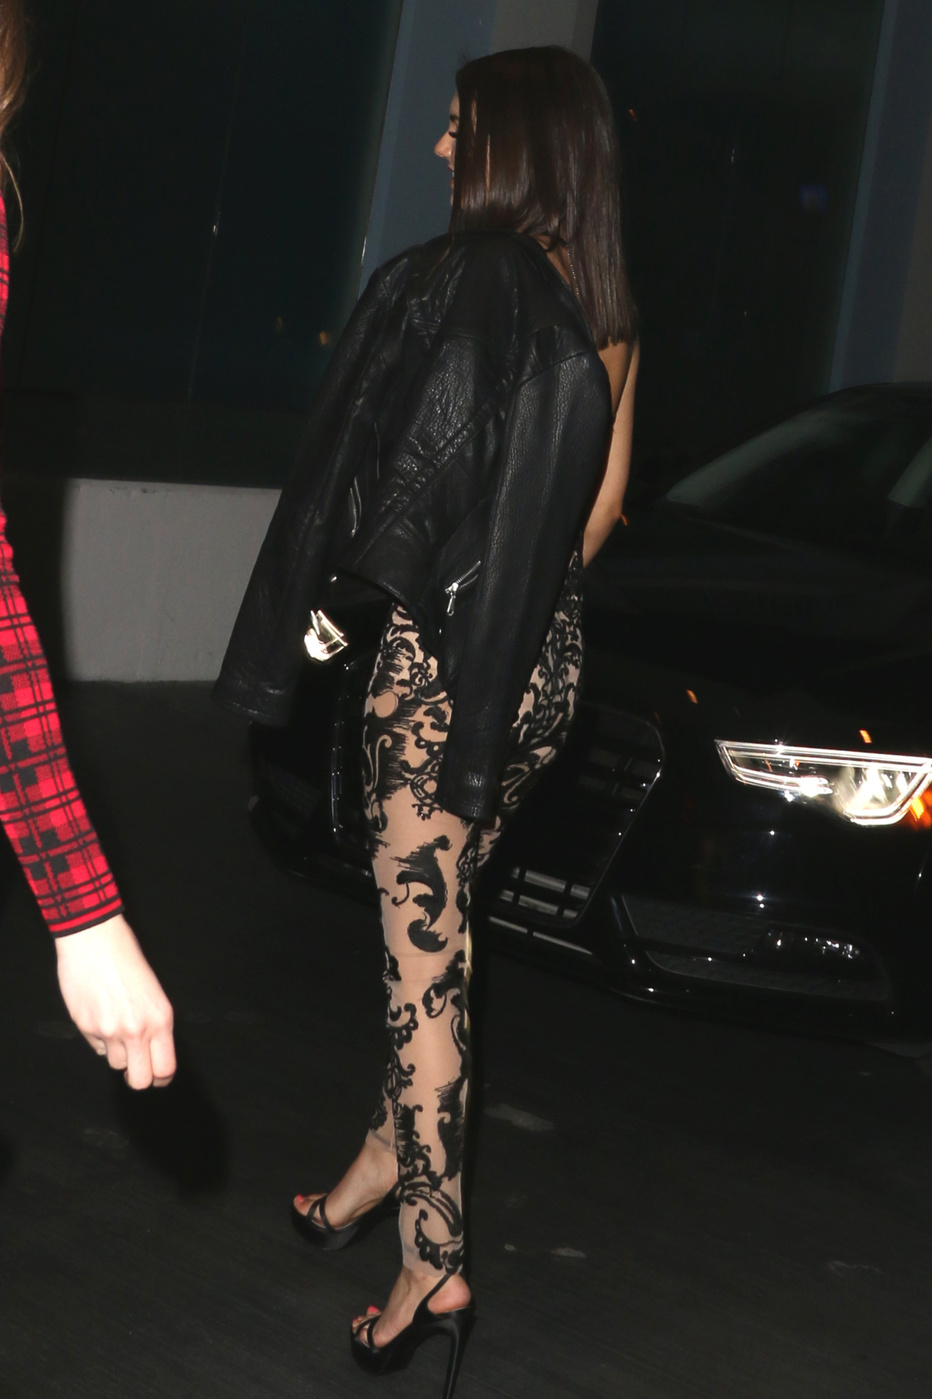 Victoria Justice attends the Kode Magazine Party held at the Standard Hotel in West Hollywood